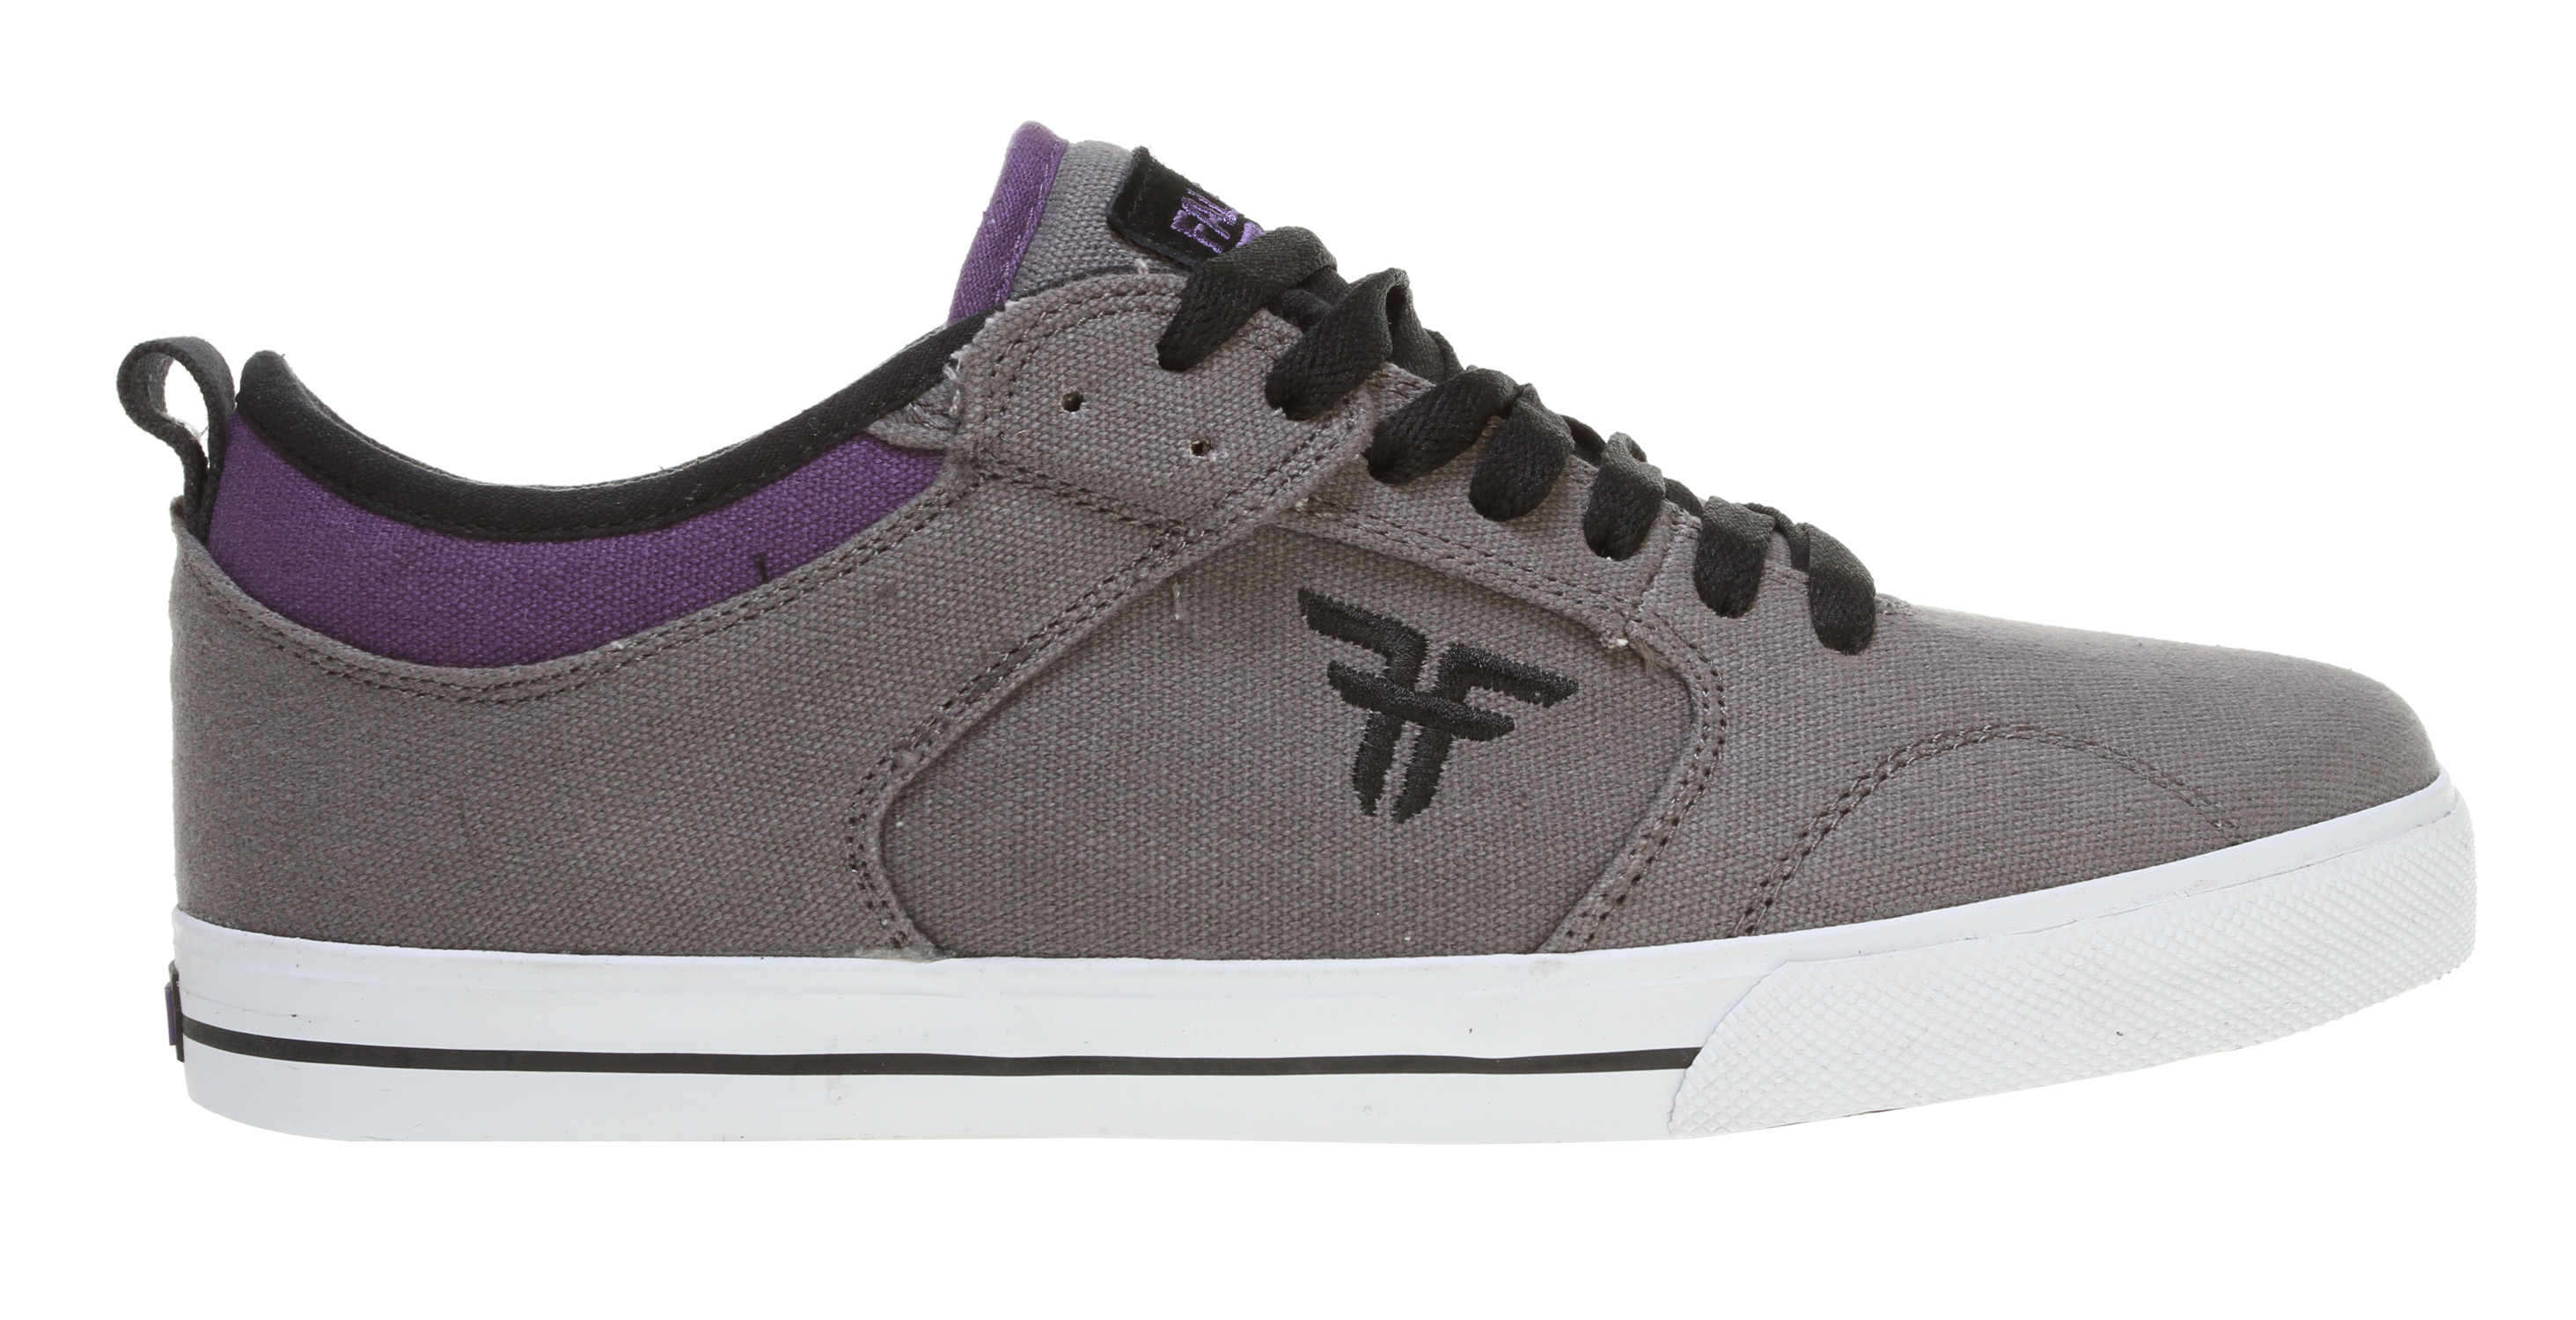 Skateboard Key Features of the Fallen Clipper Skate Shoes: Genuine heavy duty suede upper Asymmetric stabilizer for medial upper support Lightly foam-padded collar and tongue for comfort and support Vulcanized sole construction EVA insole to absorb impact and provide cushioning Highly abrasion-resistant outsole for wear and durability - $59.95